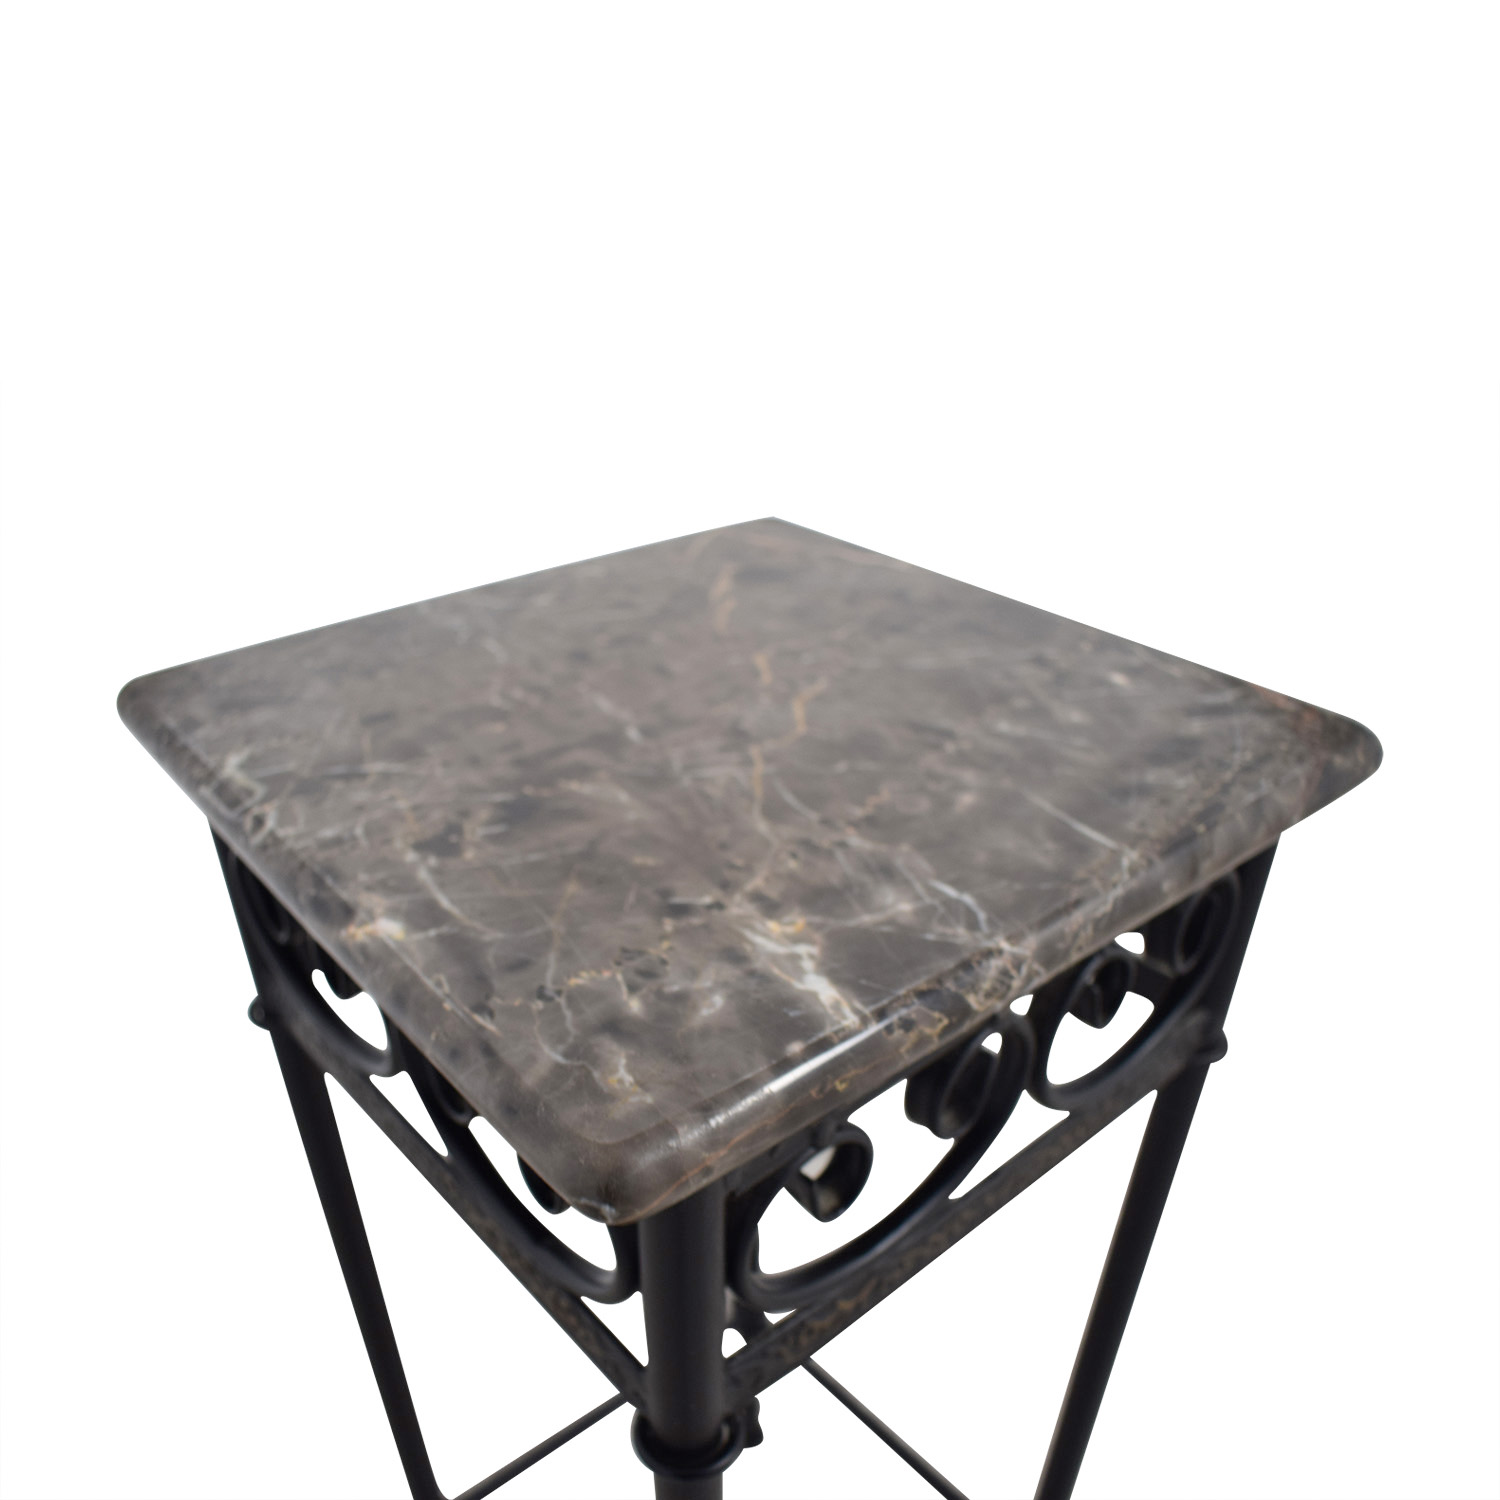 off faux marble with black metal base accent table tables second hand battery run lamps gloss coffee shelf bedroom chairs dining cover set oval outdoor bengal manor mango wood